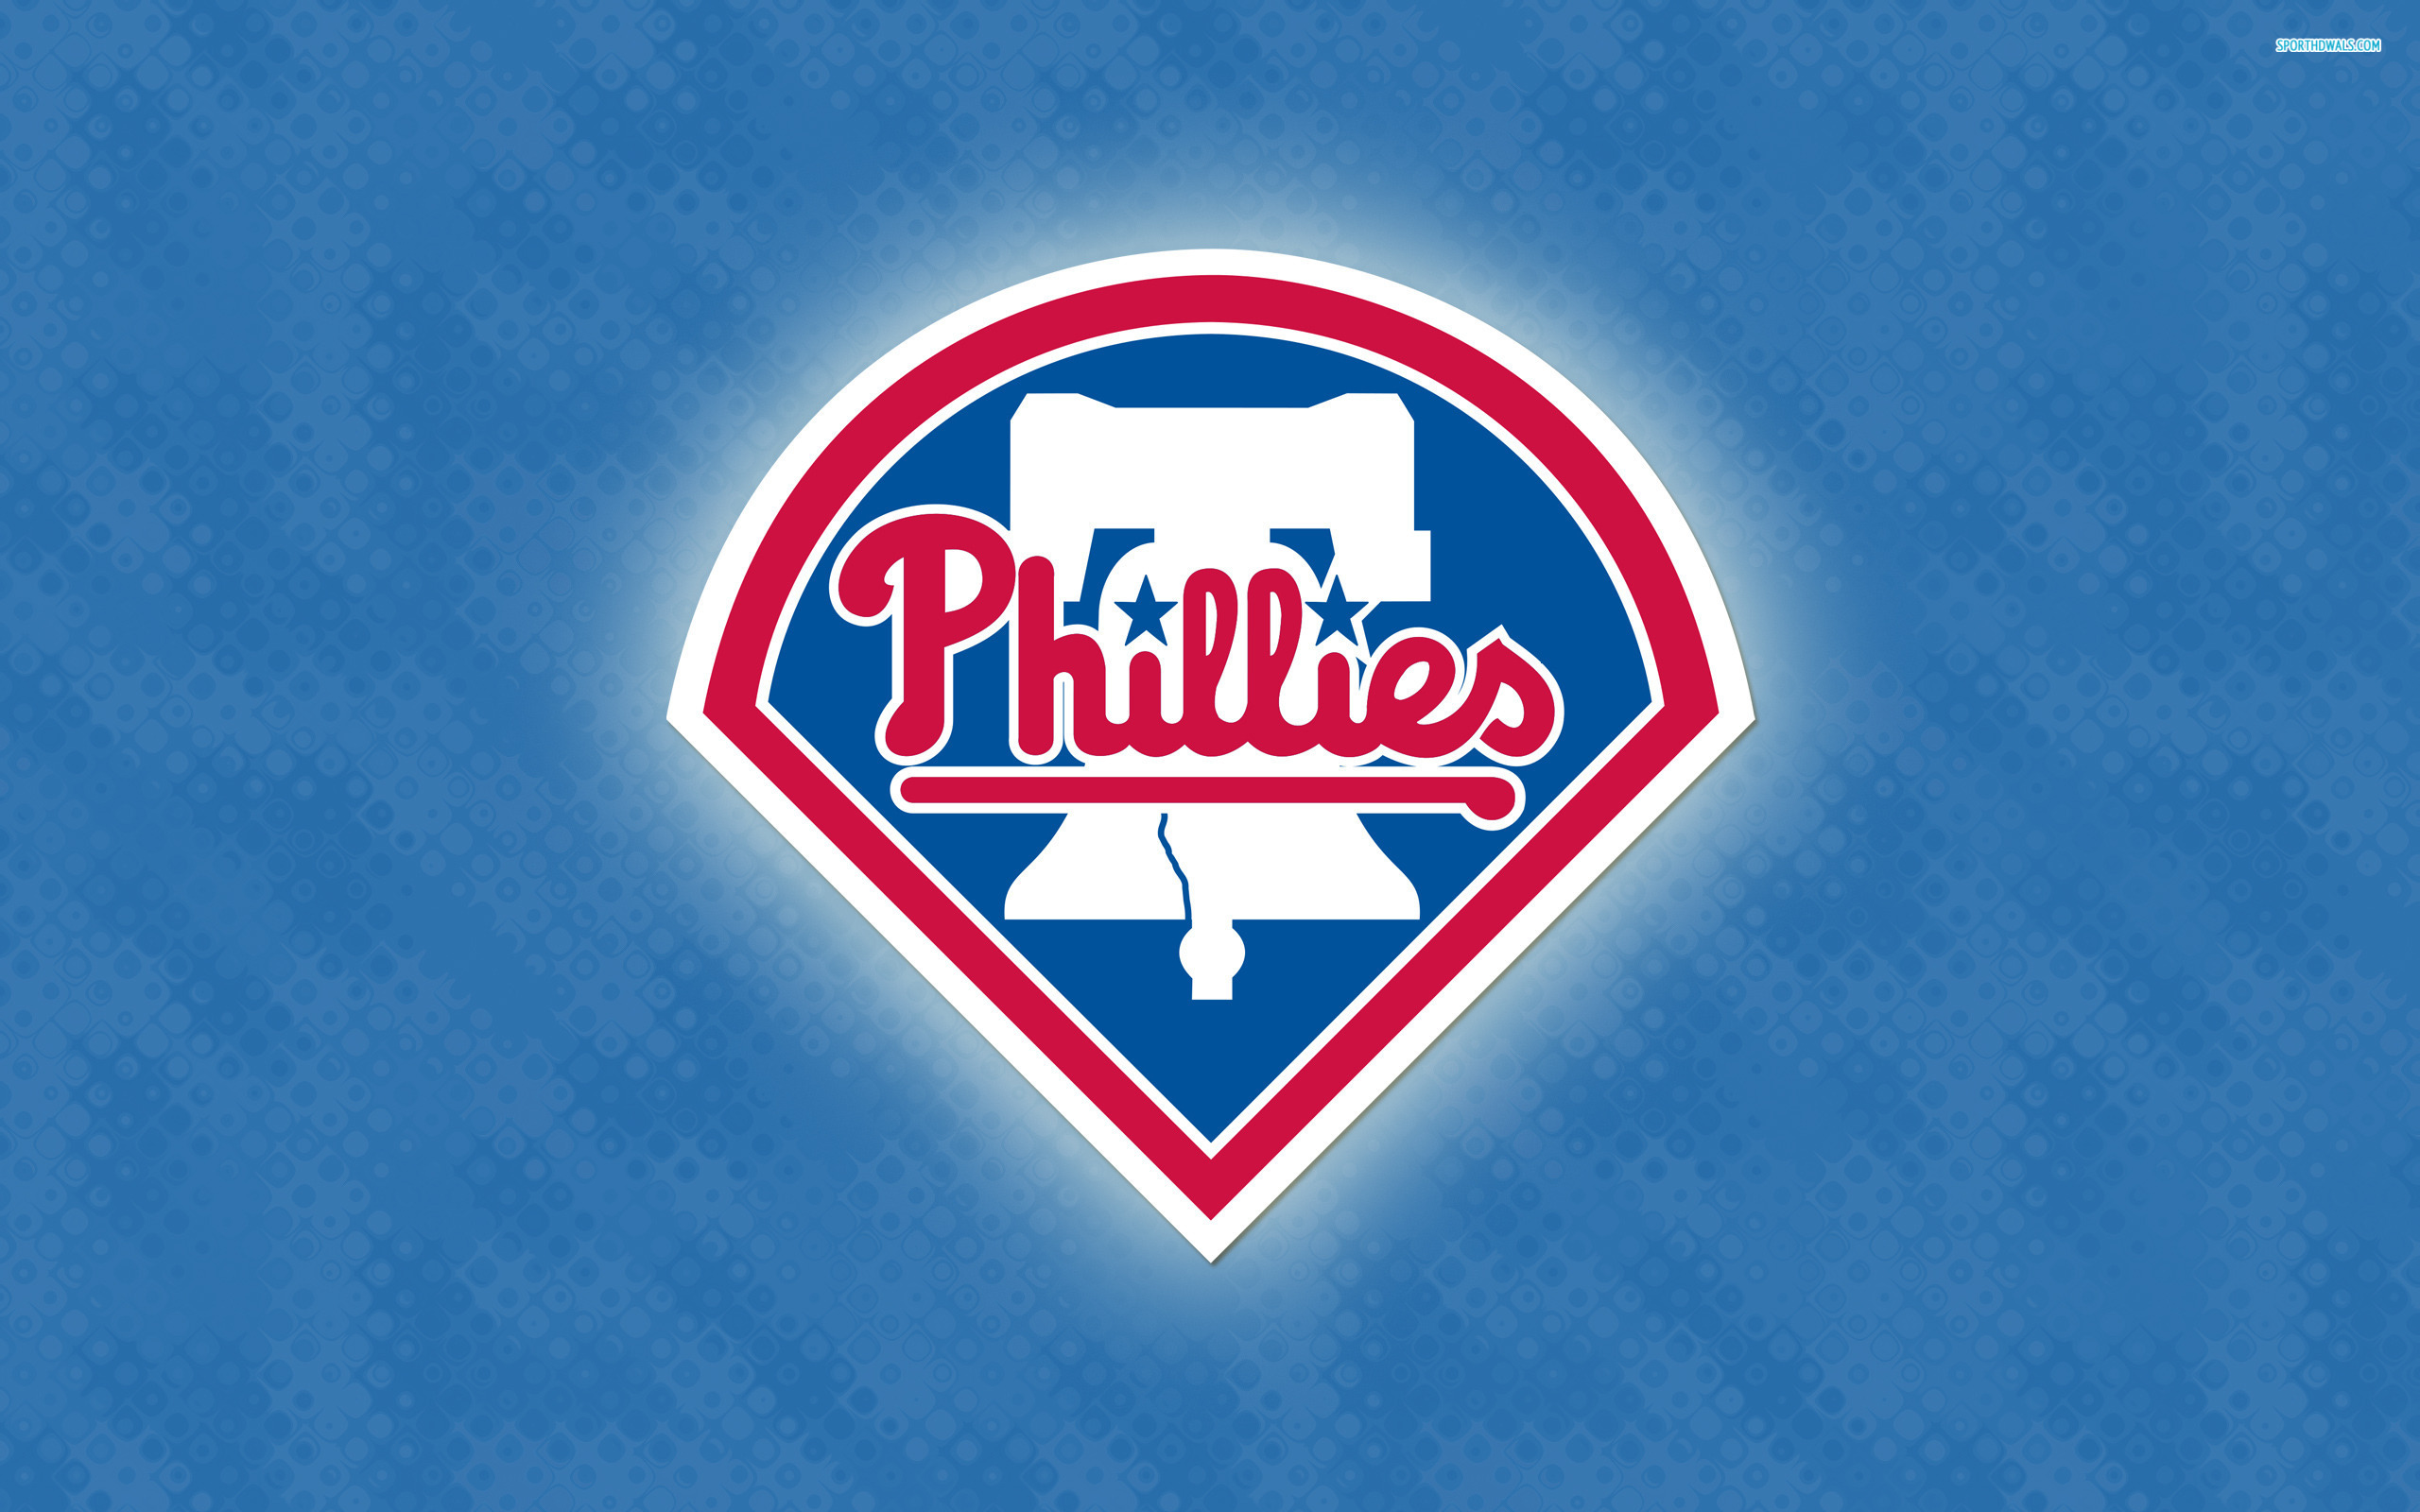 Philadelphia Phillies wallpaper 2560x1600